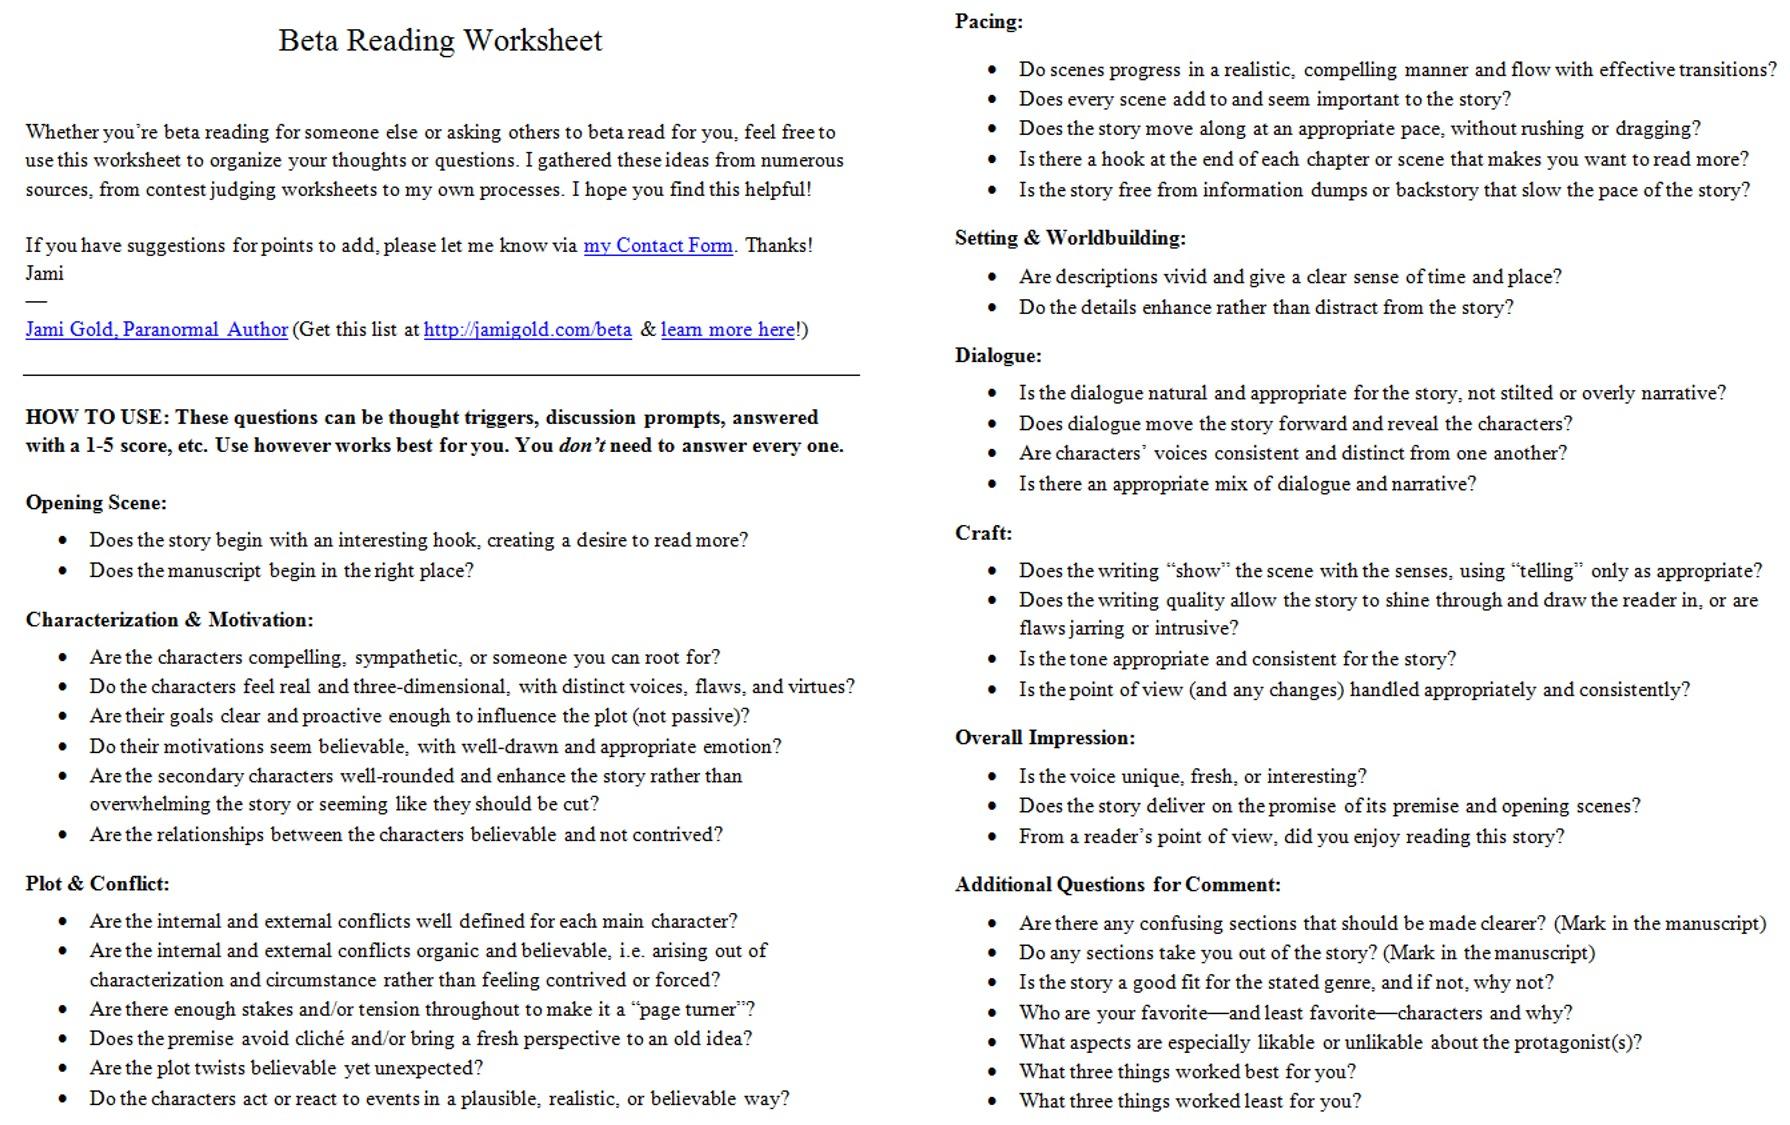 Aldiablosus  Unusual Worksheets For Writers  Jami Gold Paranormal Author With Hot Screen Shot Of The Twopage Beta Reading Worksheet With Agreeable Ten Frame Worksheets Also Free Nd Grade Math Worksheets In Addition America The Story Of Us Worksheets And Chemistry Of Life Review Worksheet As Well As Blends Worksheets Additionally Free Worksheets For Teachers From Jamigoldcom With Aldiablosus  Hot Worksheets For Writers  Jami Gold Paranormal Author With Agreeable Screen Shot Of The Twopage Beta Reading Worksheet And Unusual Ten Frame Worksheets Also Free Nd Grade Math Worksheets In Addition America The Story Of Us Worksheets From Jamigoldcom